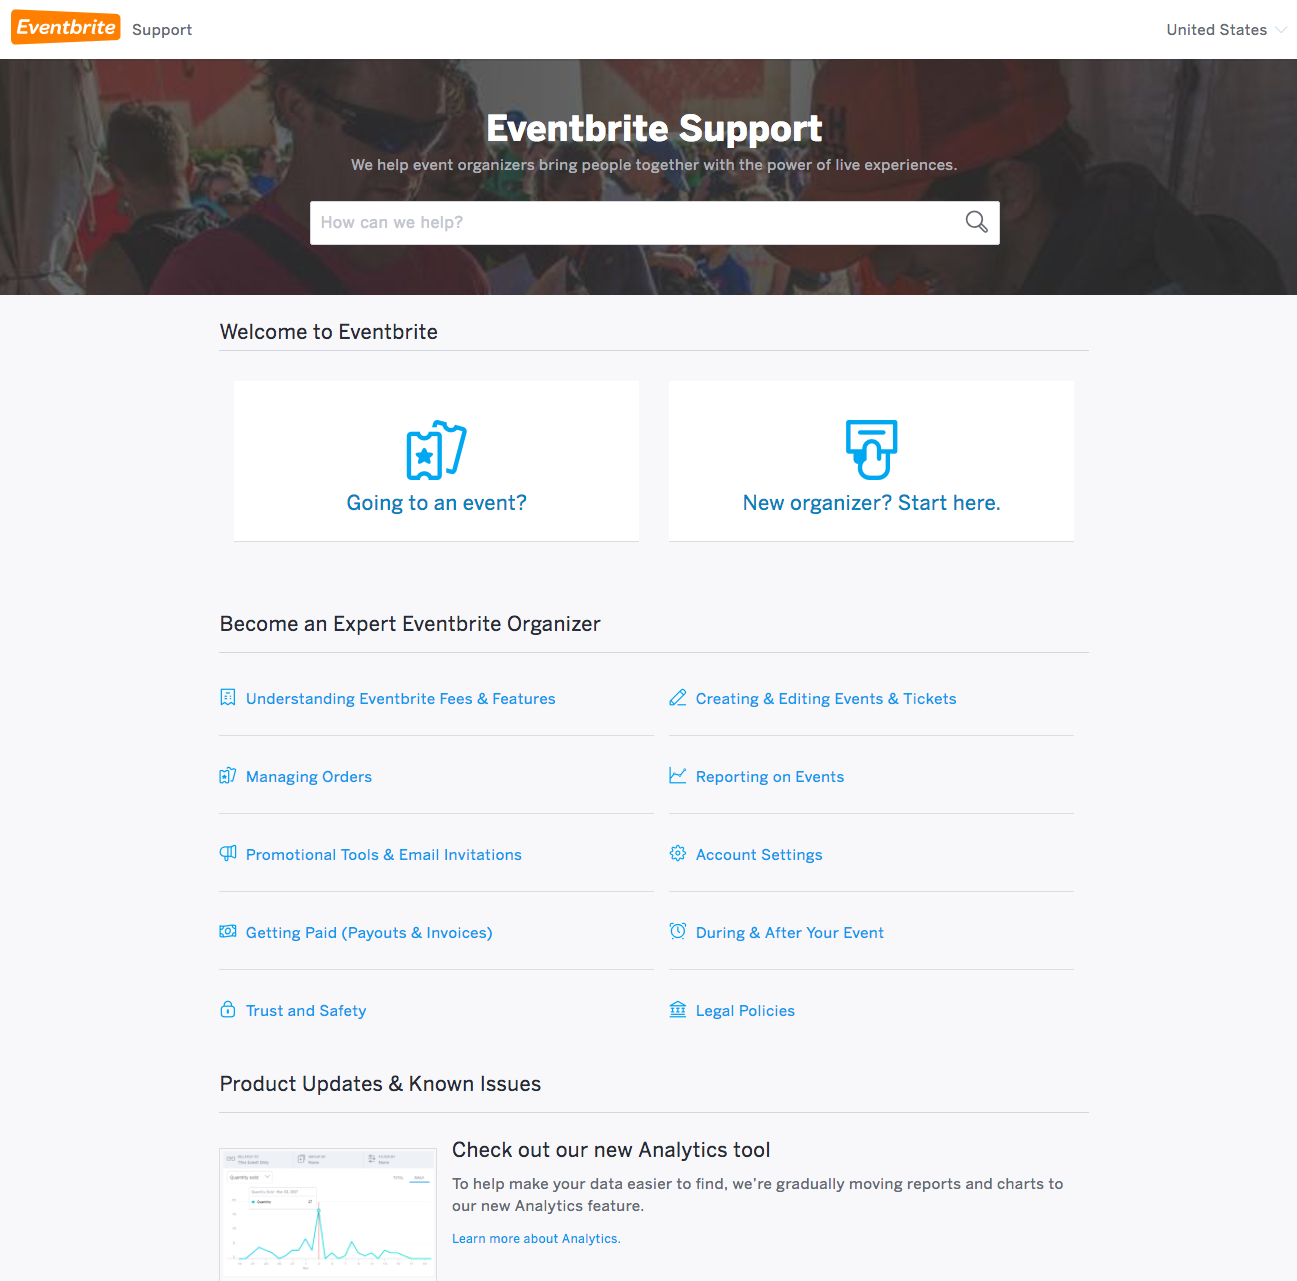 Homepage_Eventbrite Support_Cropped.png